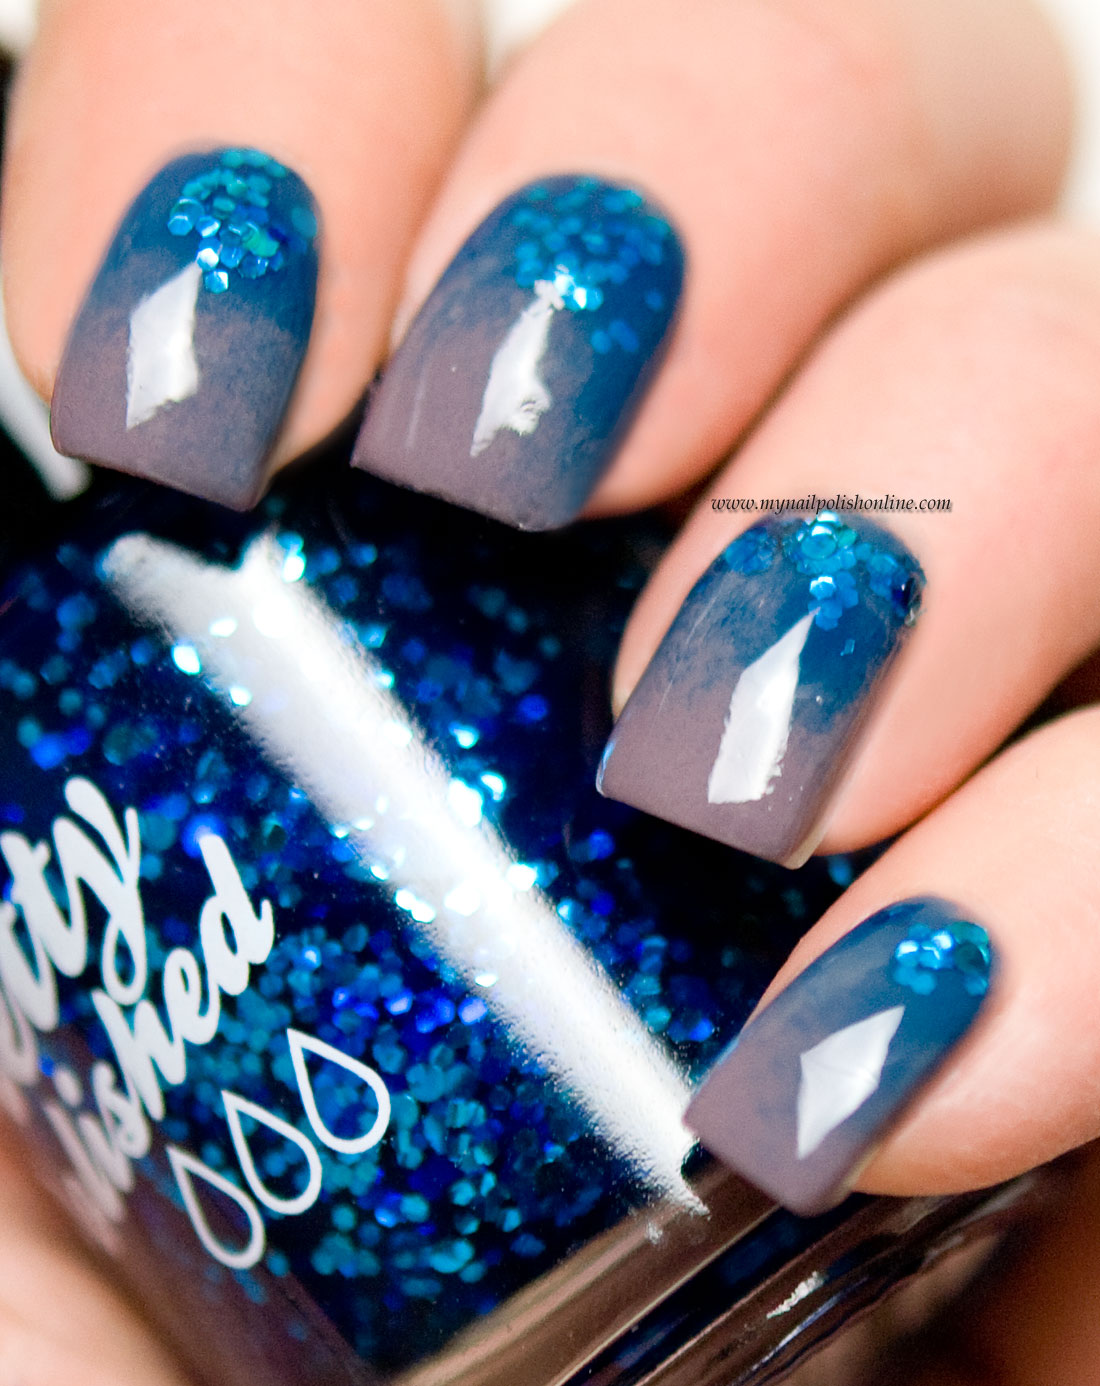 Images of nail art with glitter hair nails etc uk nail beauty view images nail art glitter gradient prinsesfo Gallery